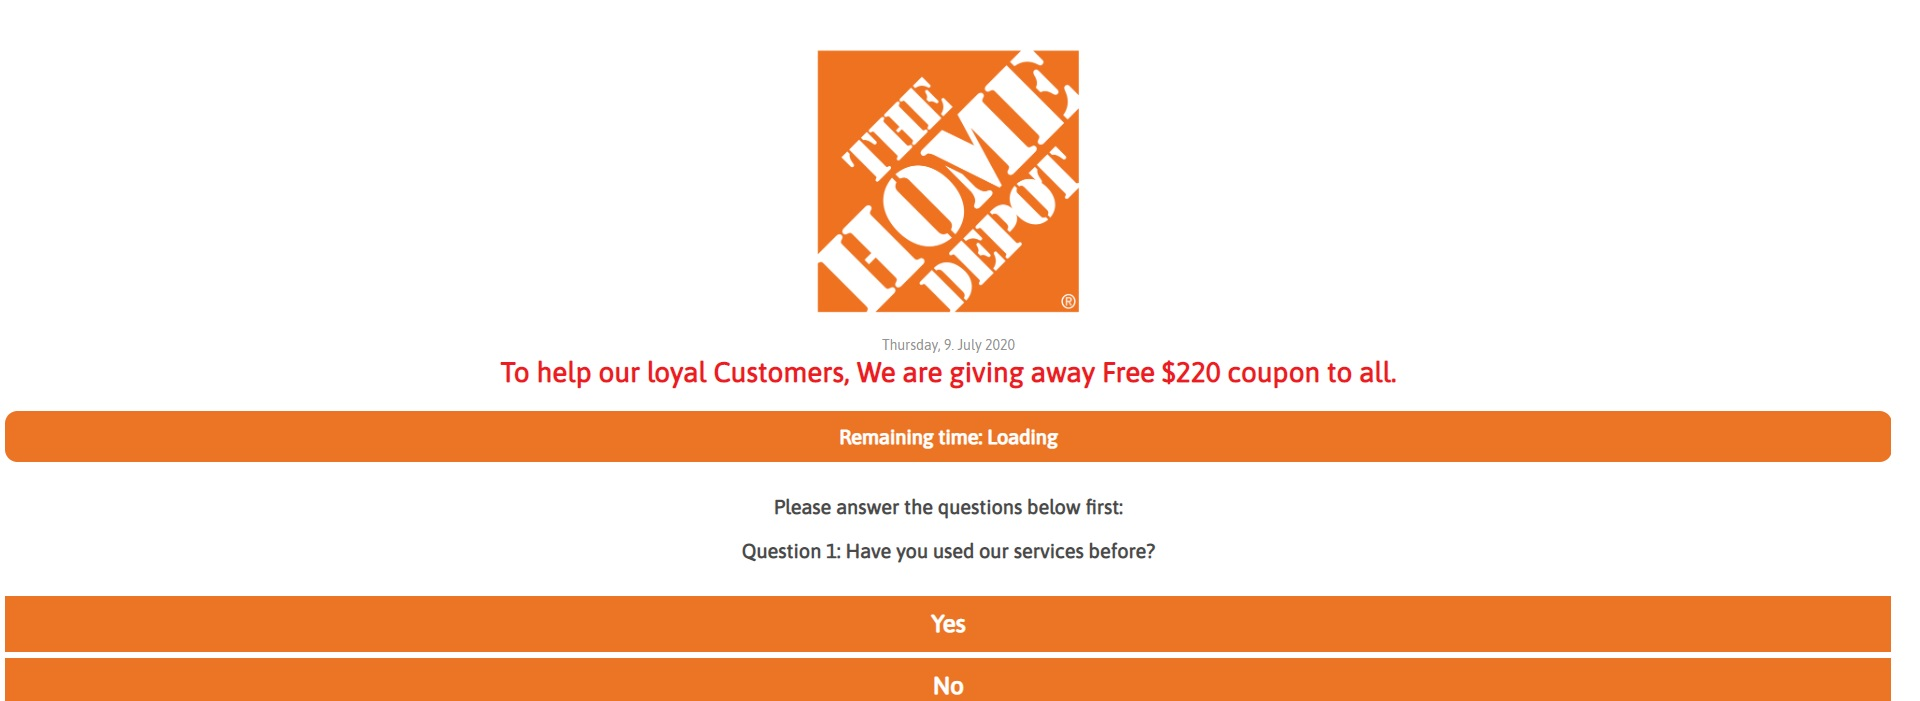 Home Depot Coupon Scam: $220 Discount on Purchase of $250